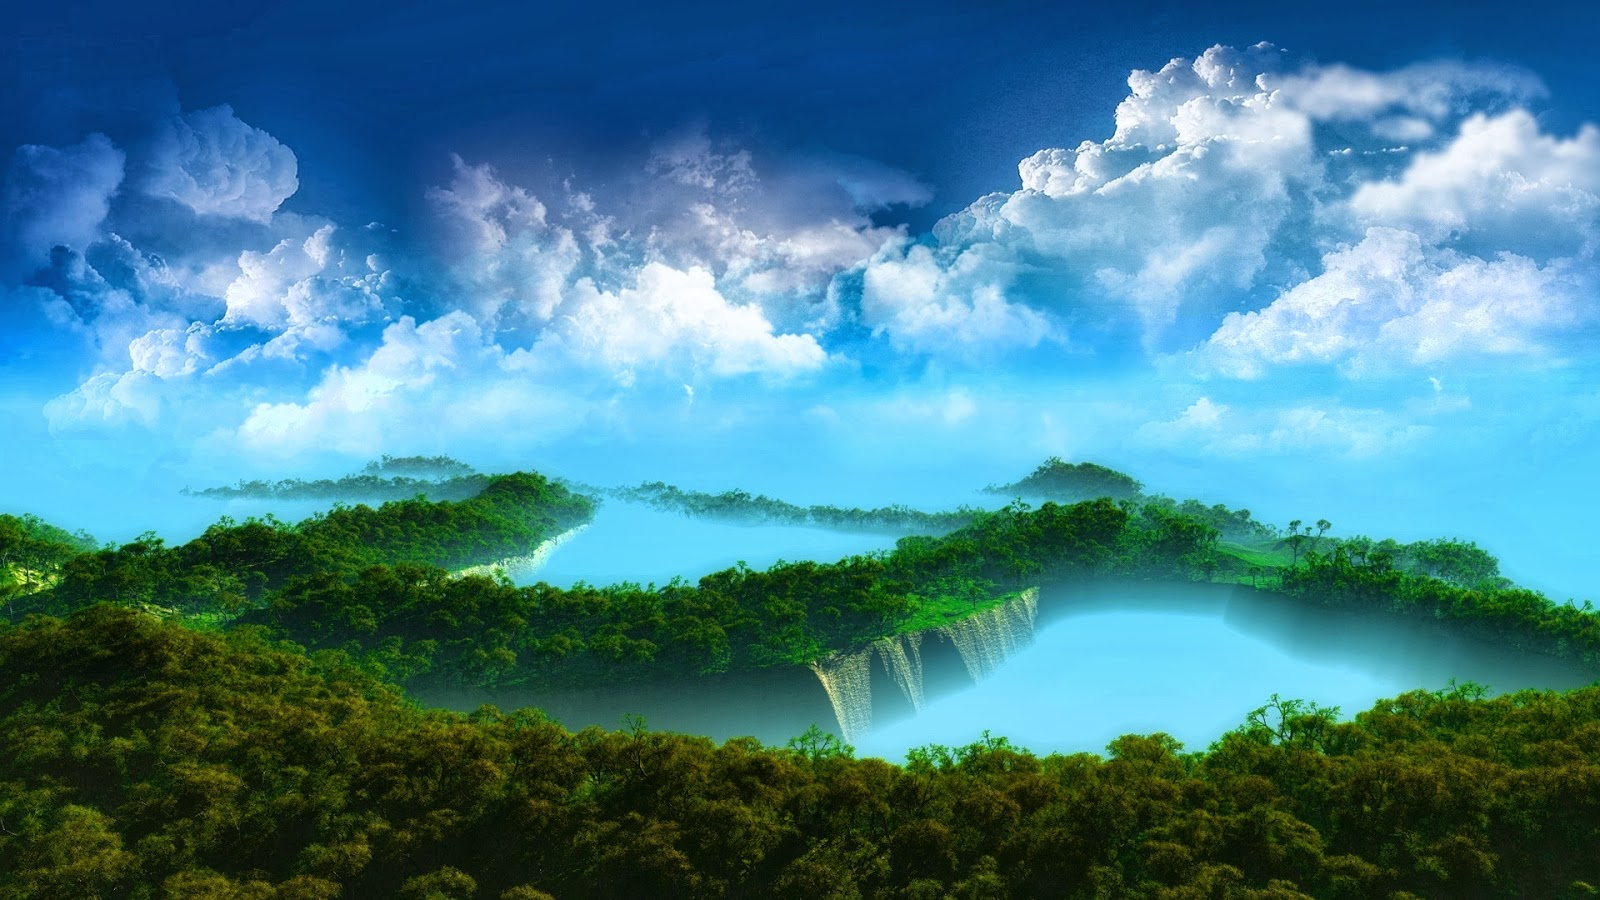 wallpapers download full hd nature wallpapers download 1600x900